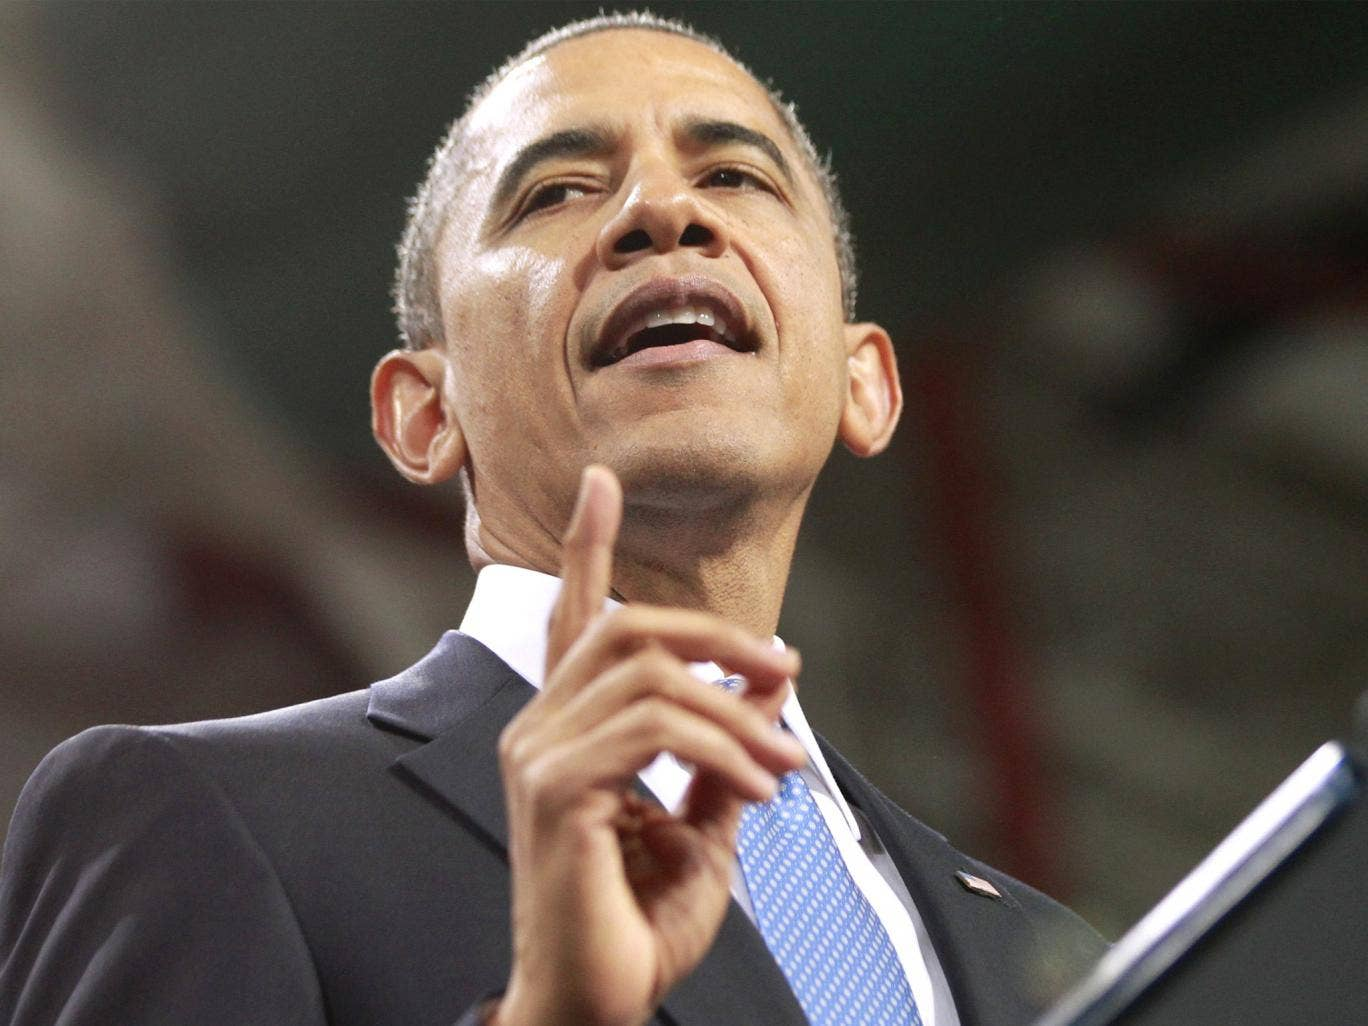 President Obama has made overhauling immigration a priority